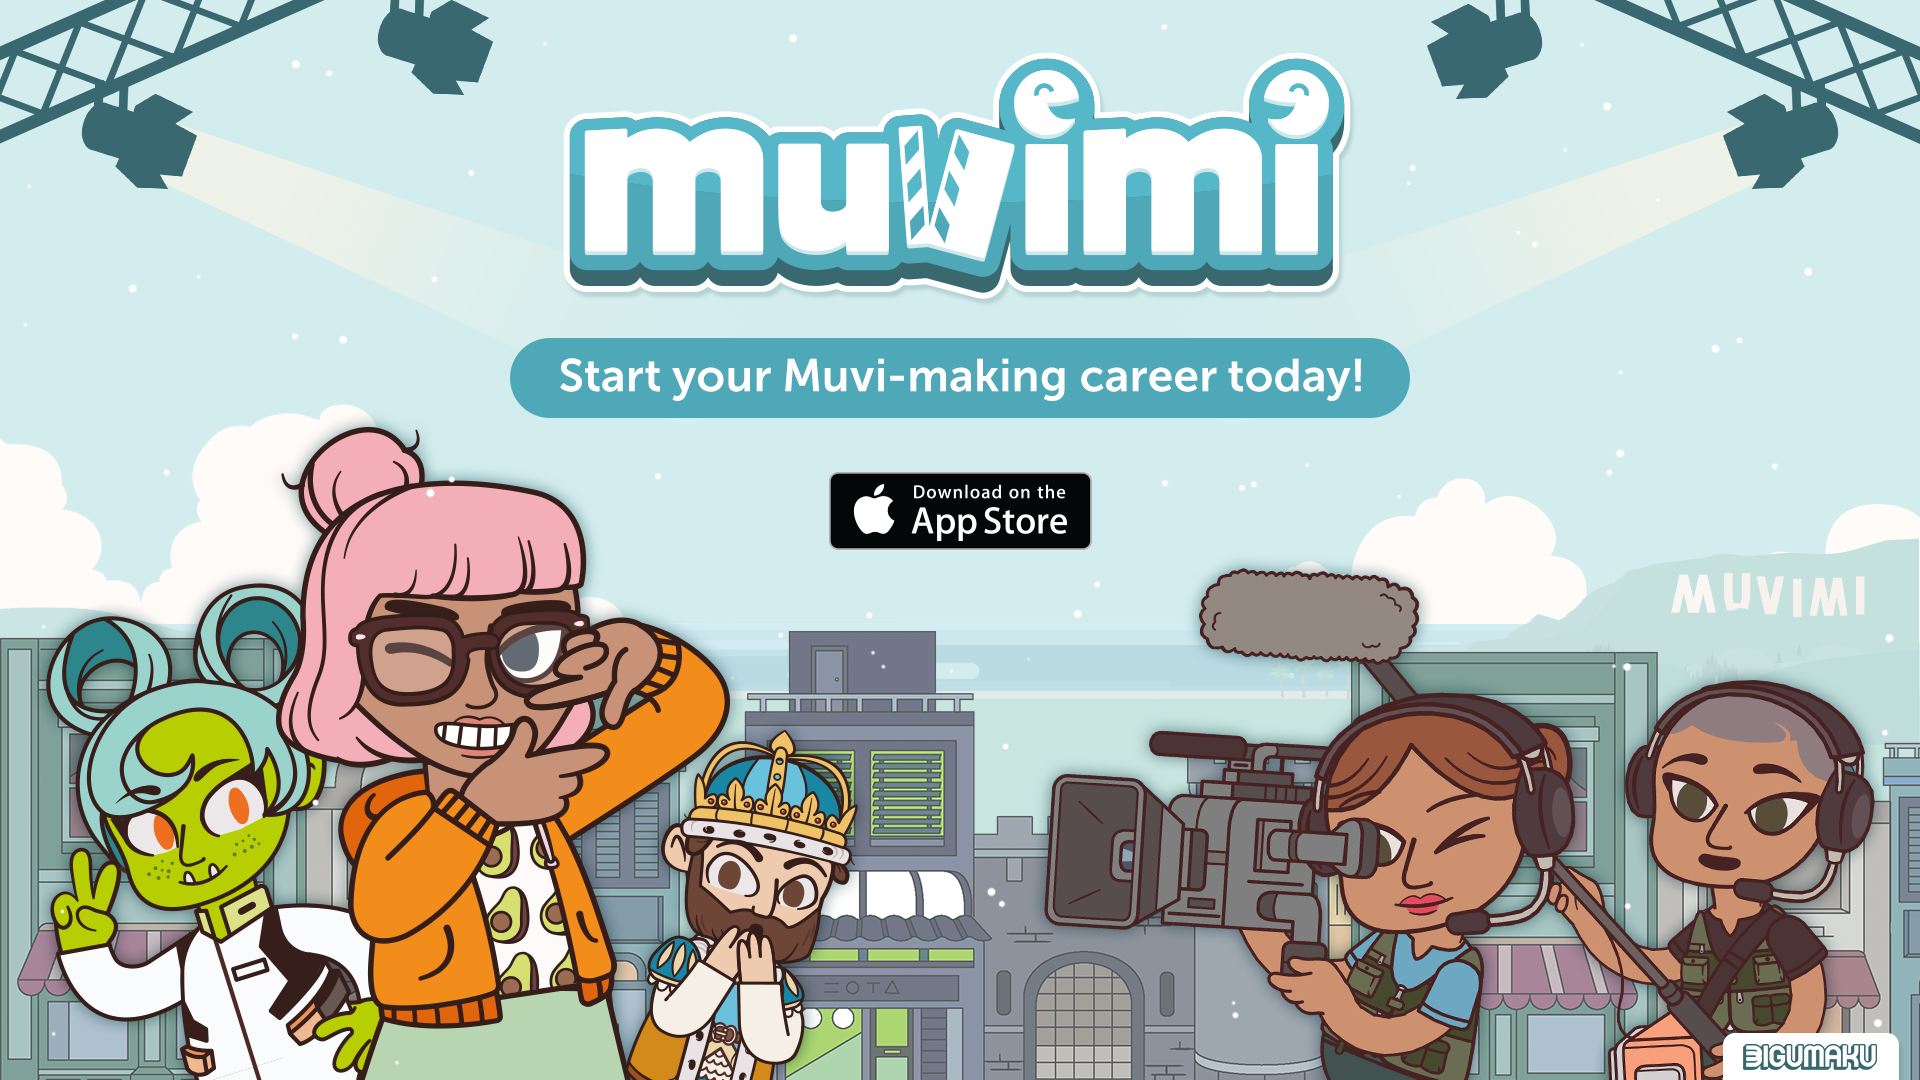 Muvimi mobile game launch